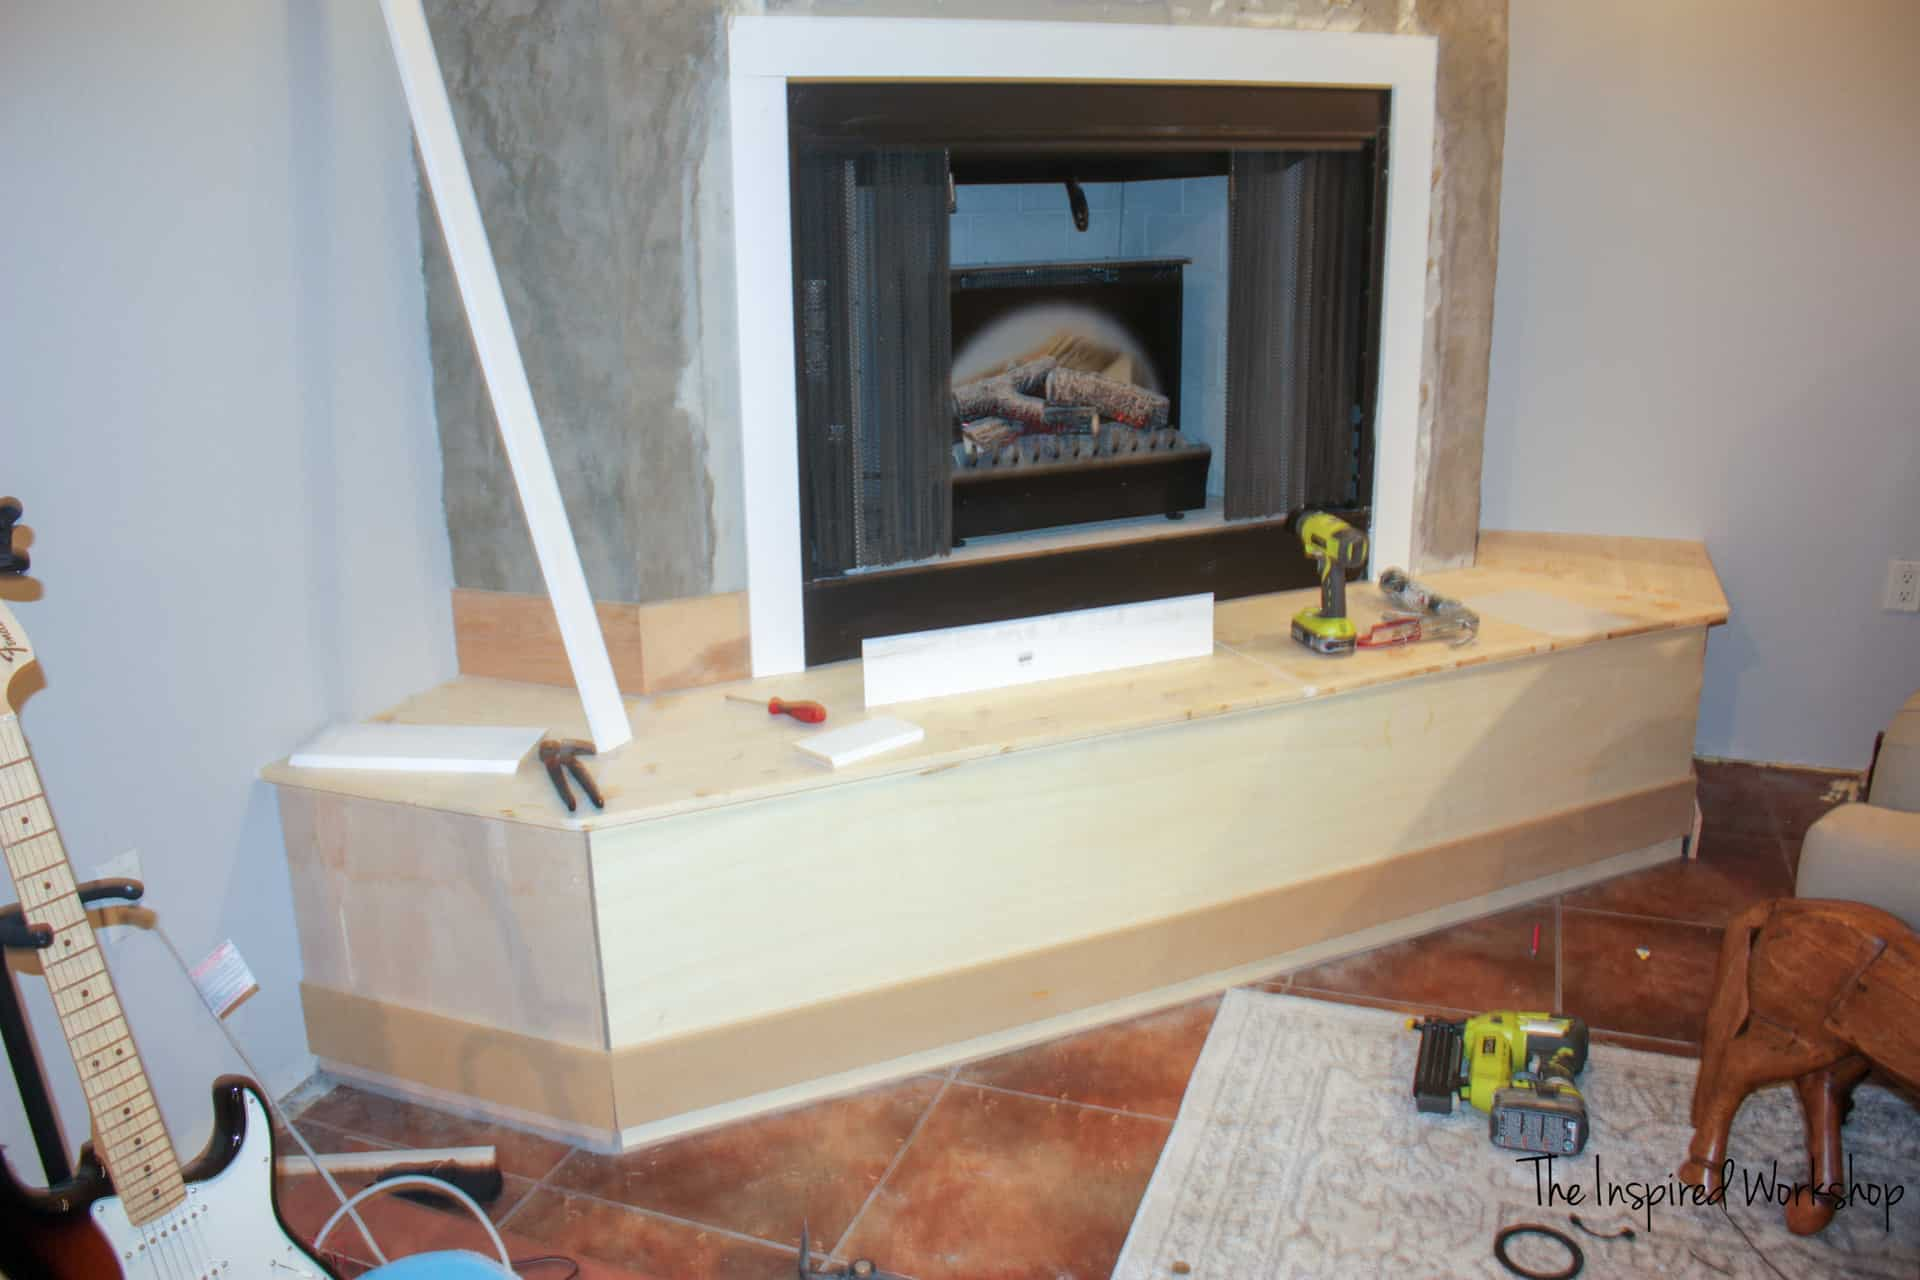 Fireplace Makeover - Adding the trim molding and baseboards